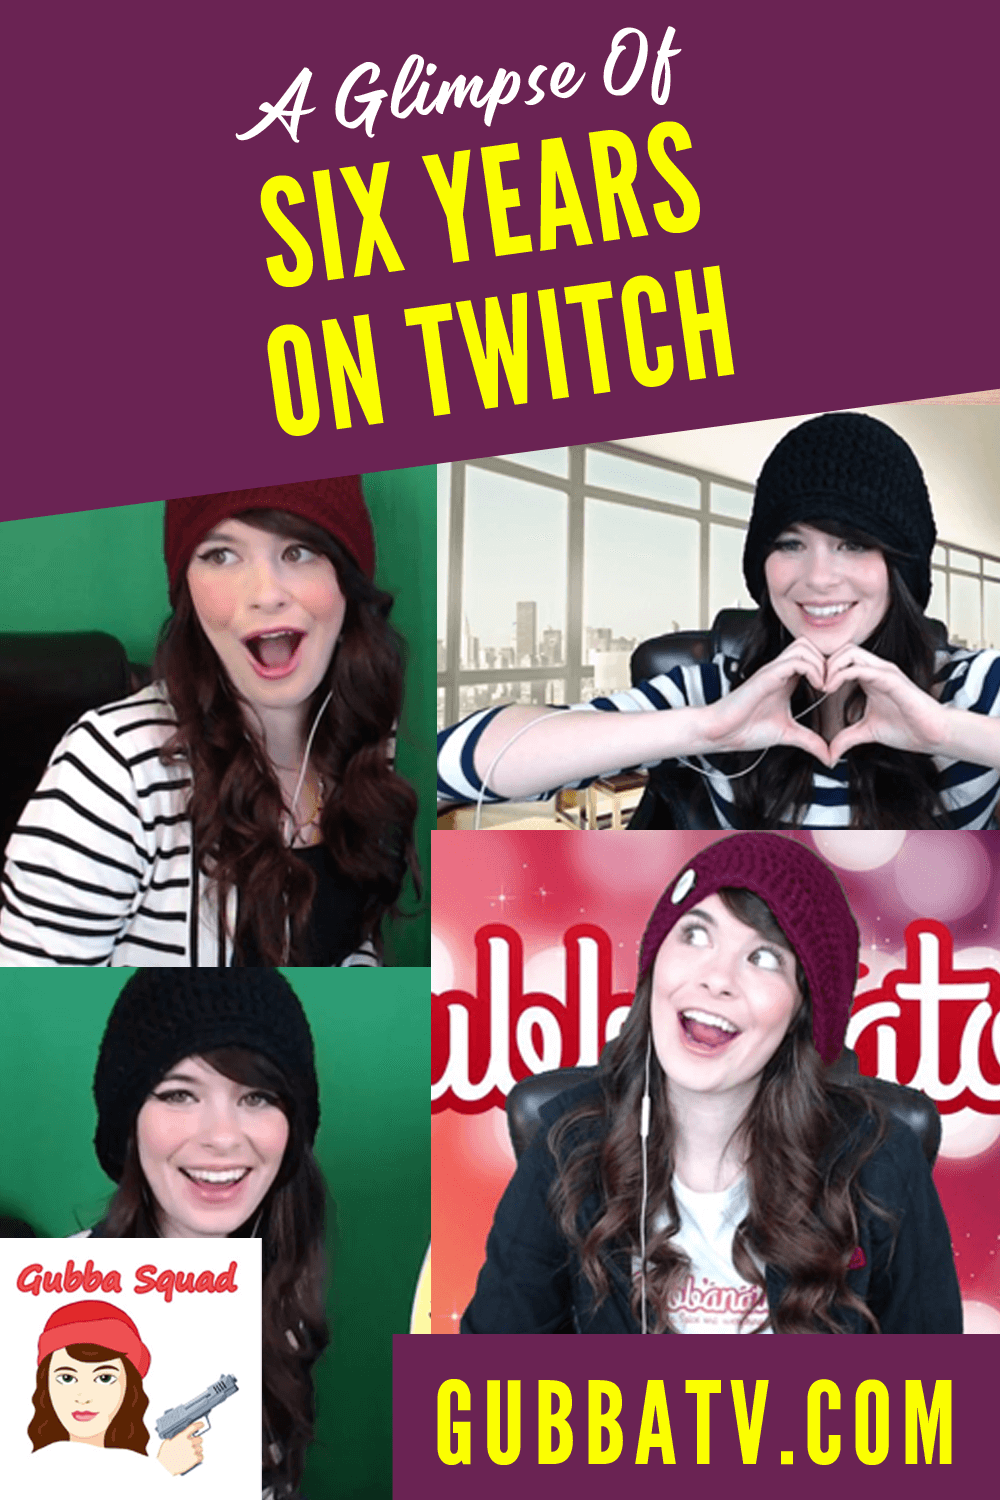 A Glimpse Of Six Years On Twitch